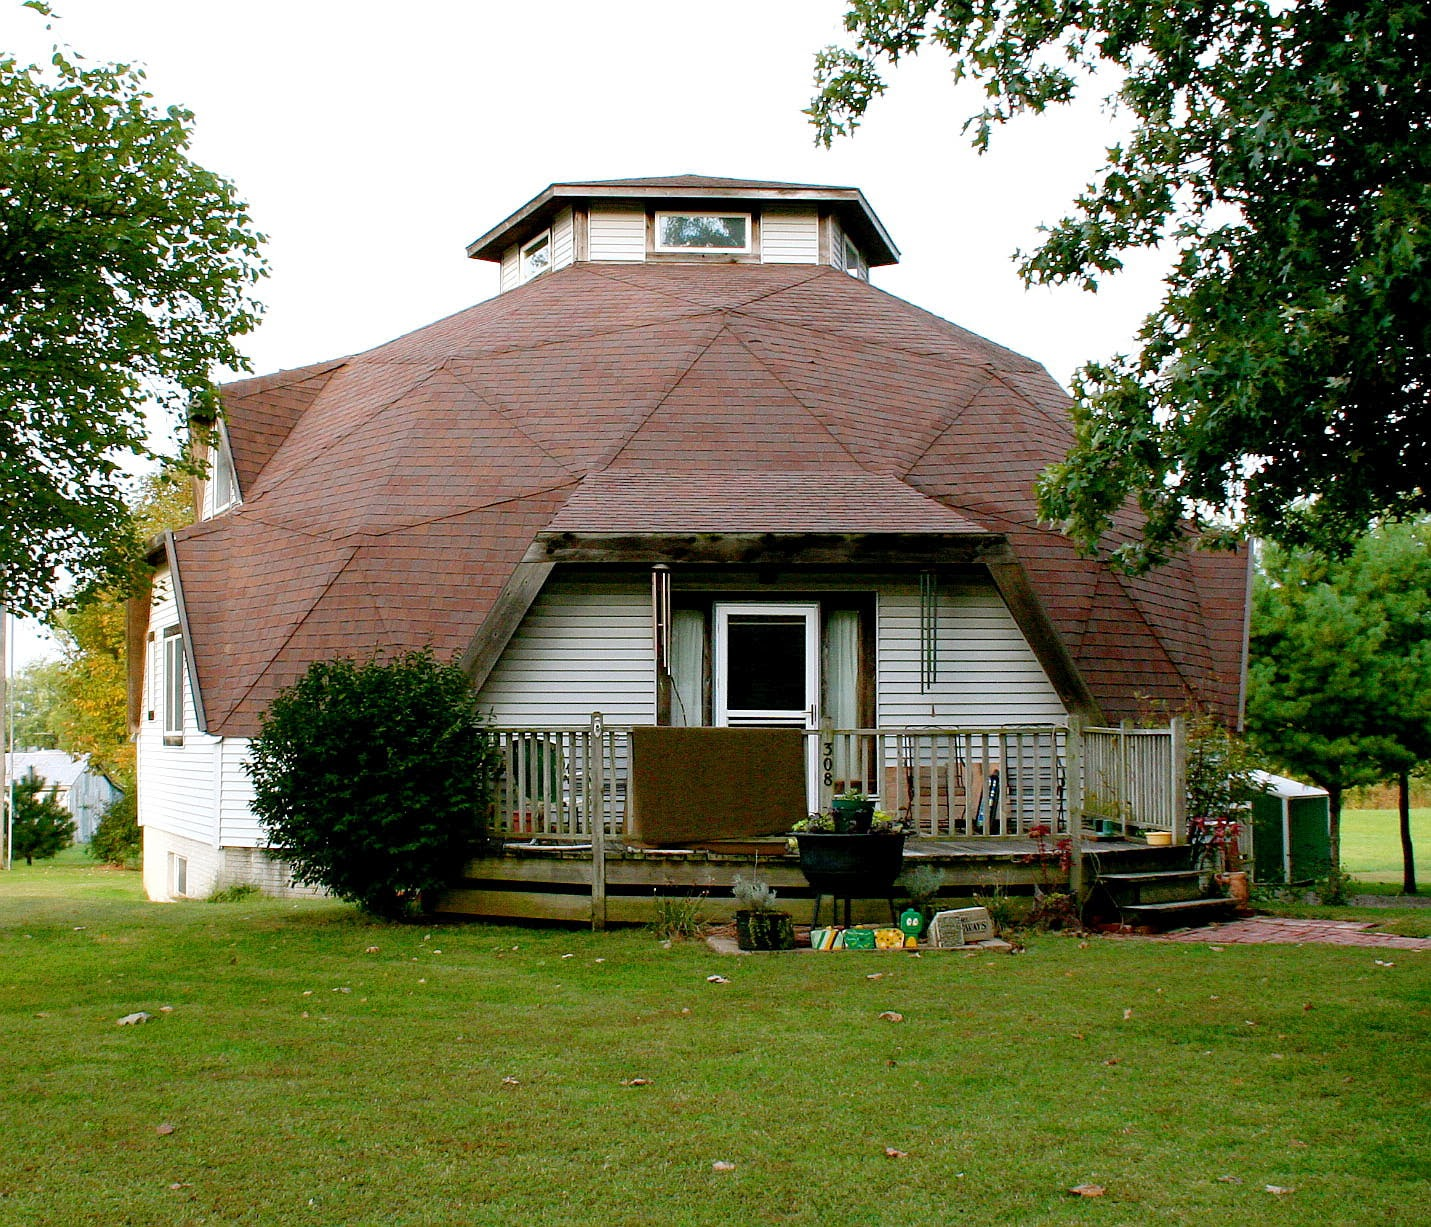 Dome Home Design Ideas: Project Gridless: Geodesic Homes